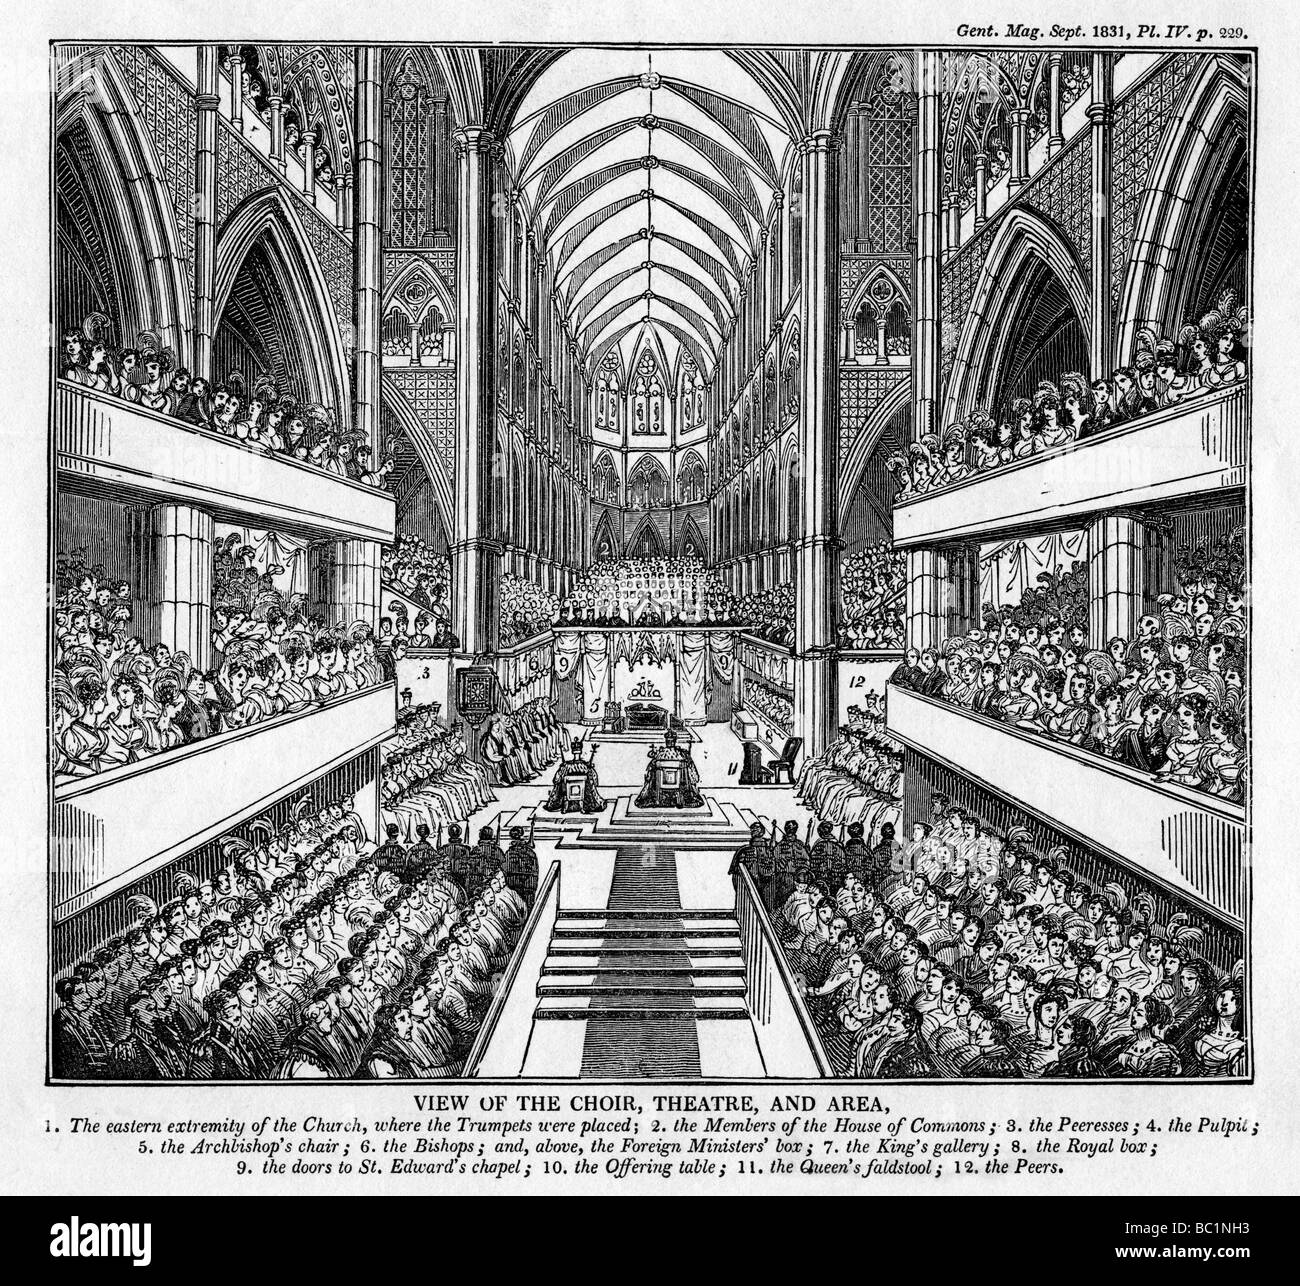 Coronation of King William IV and Queen Adelaide, Westminster Abbey, London, 1831. Artist: Unknown - Stock Image